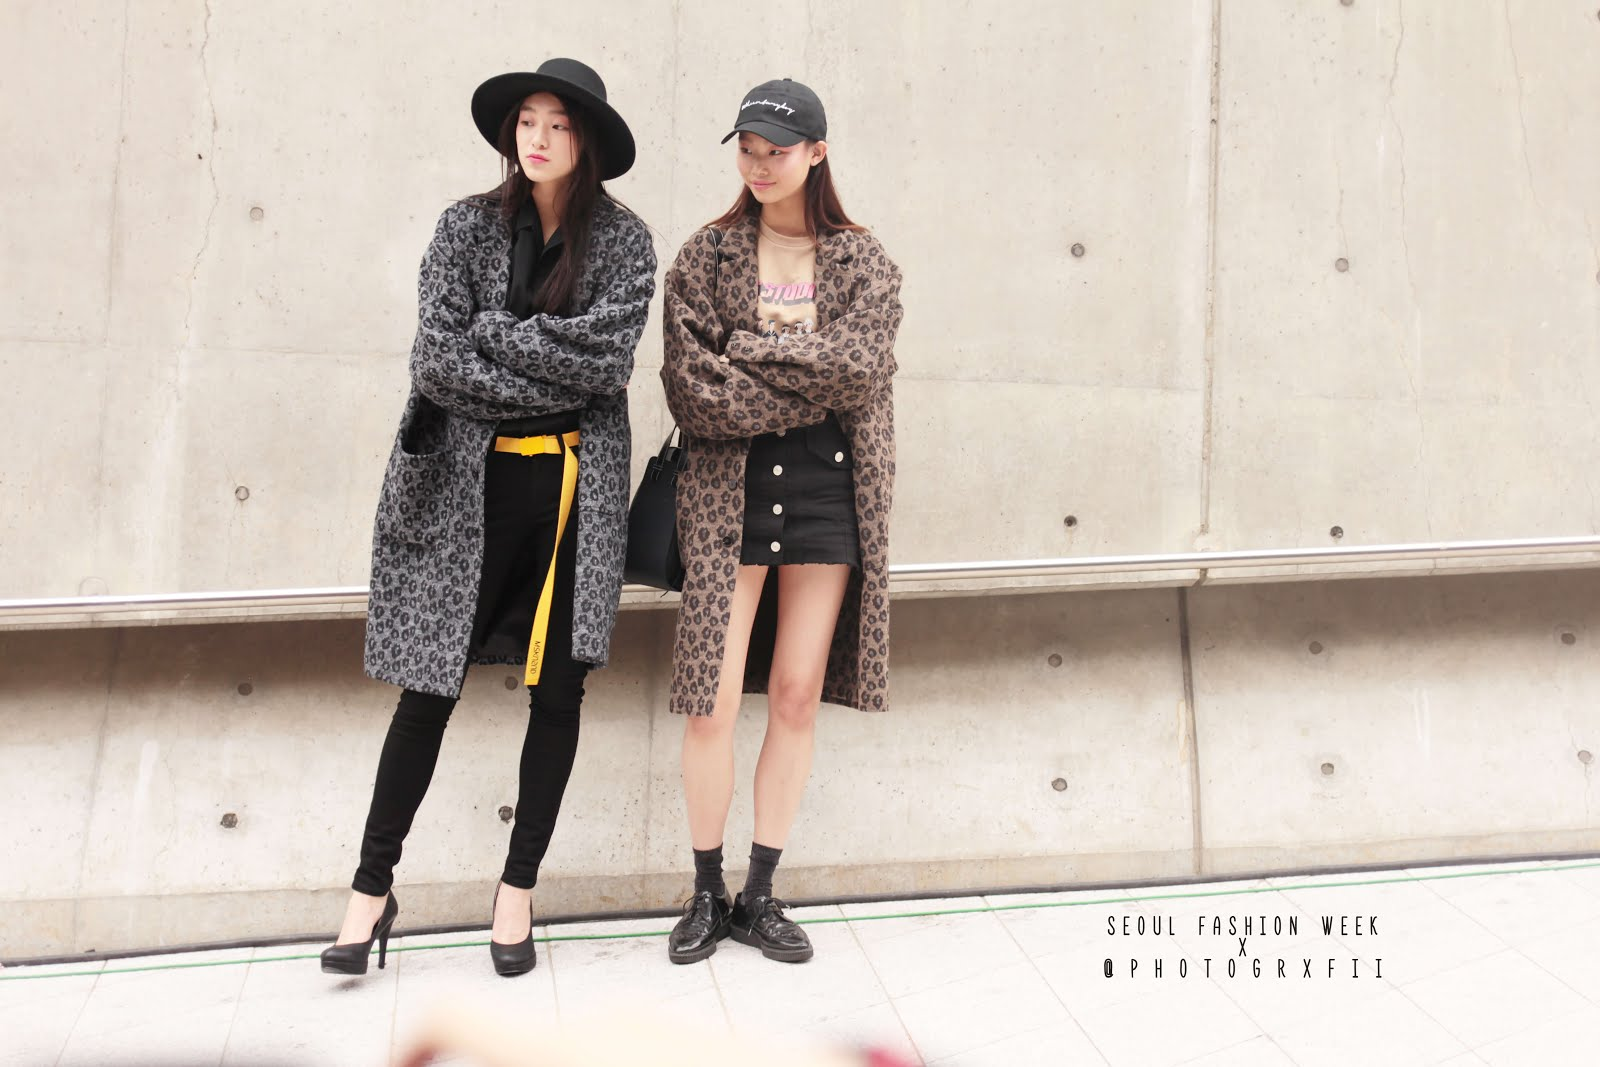 seoul fashion week ss18 models off duty